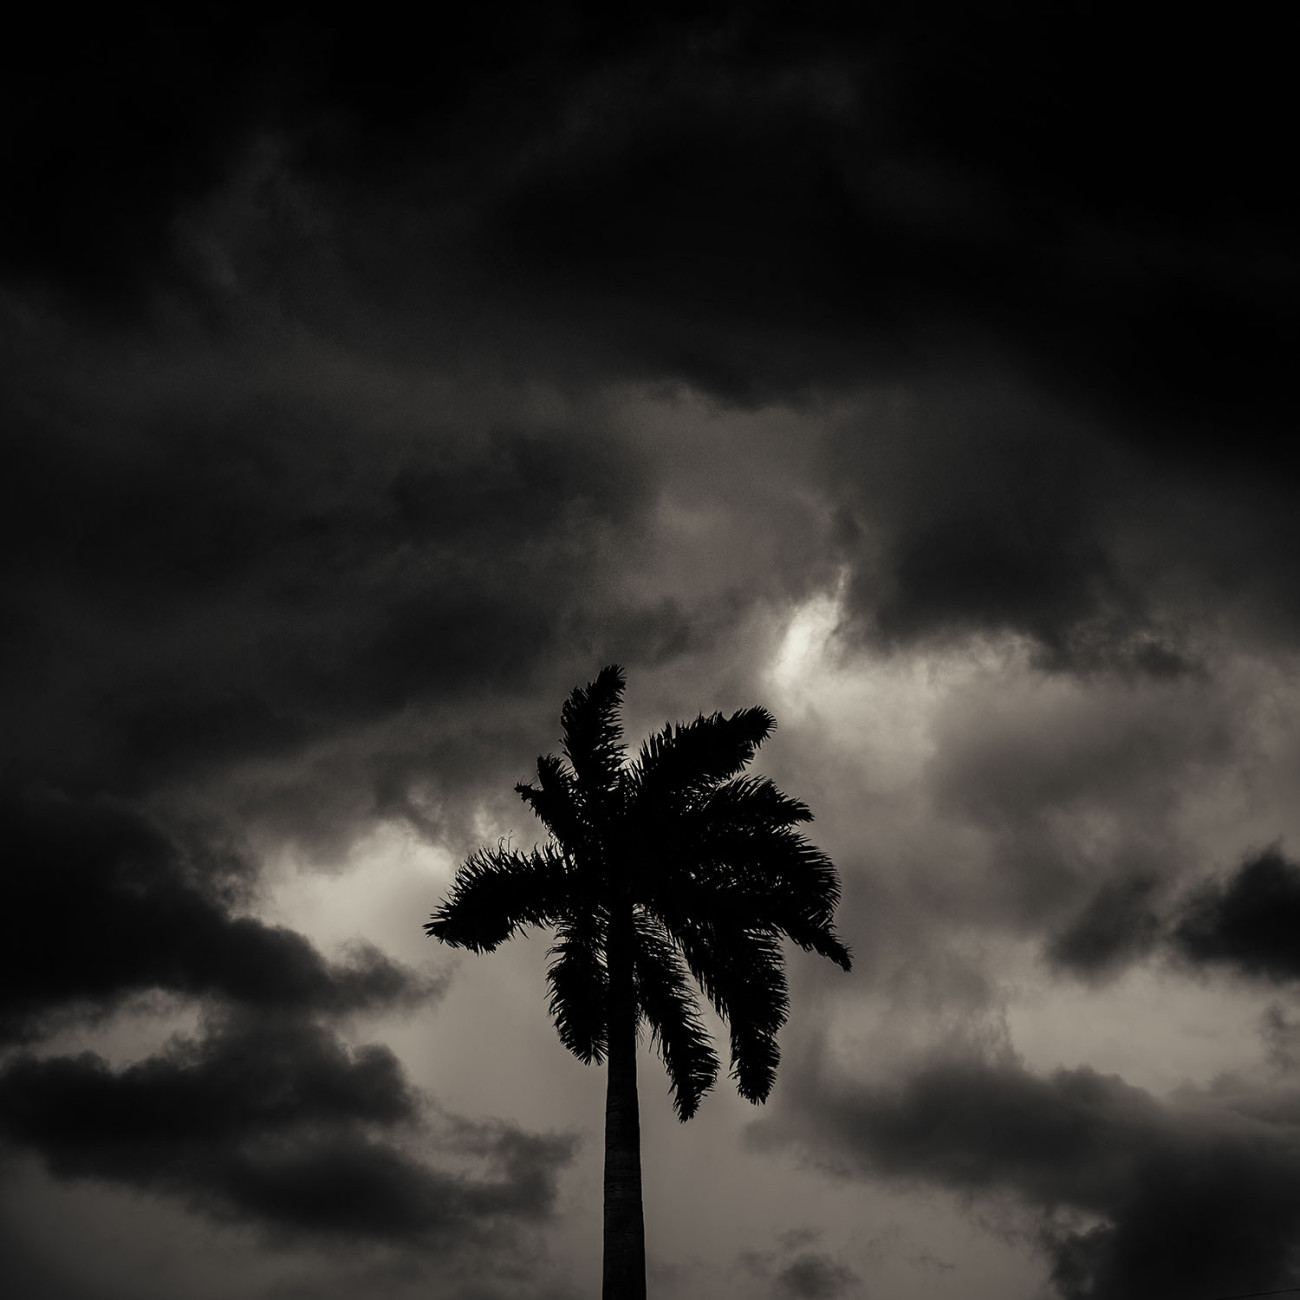 Approaching thunderstorm, Florida, 2017